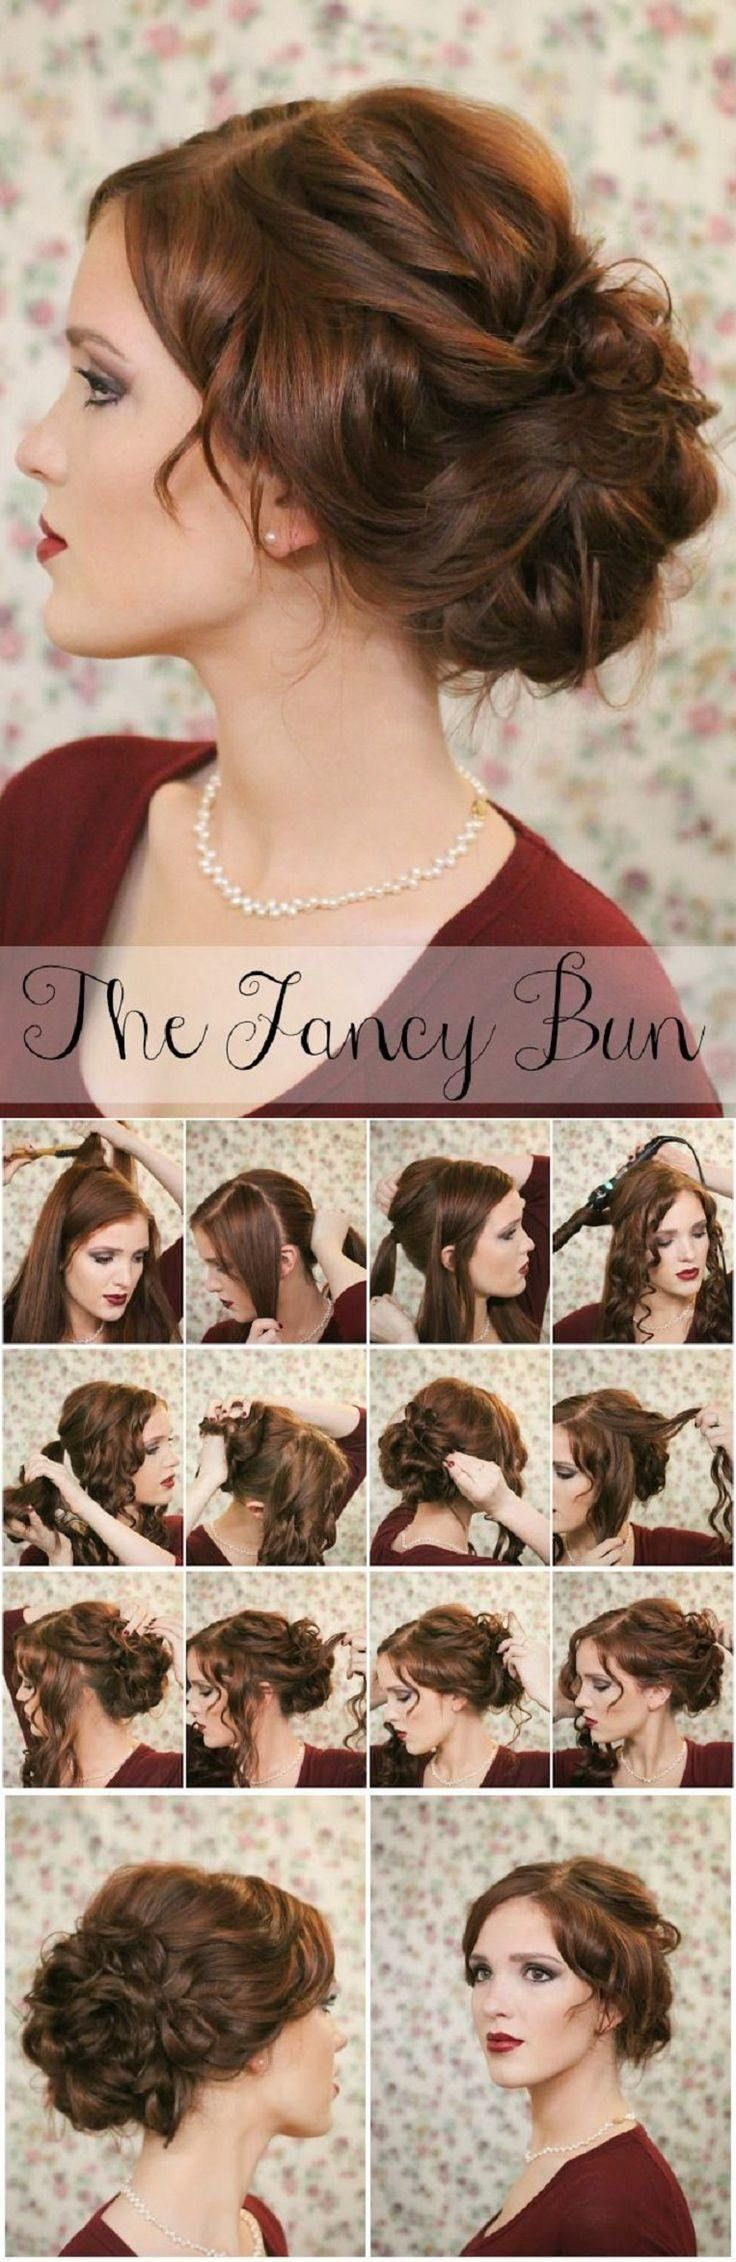 Best 25 wedding bun hairstyles ideas on pinterest prom buns best 25 wedding bun hairstyles ideas on pinterest prom buns pretty updos and updos pmusecretfo Images